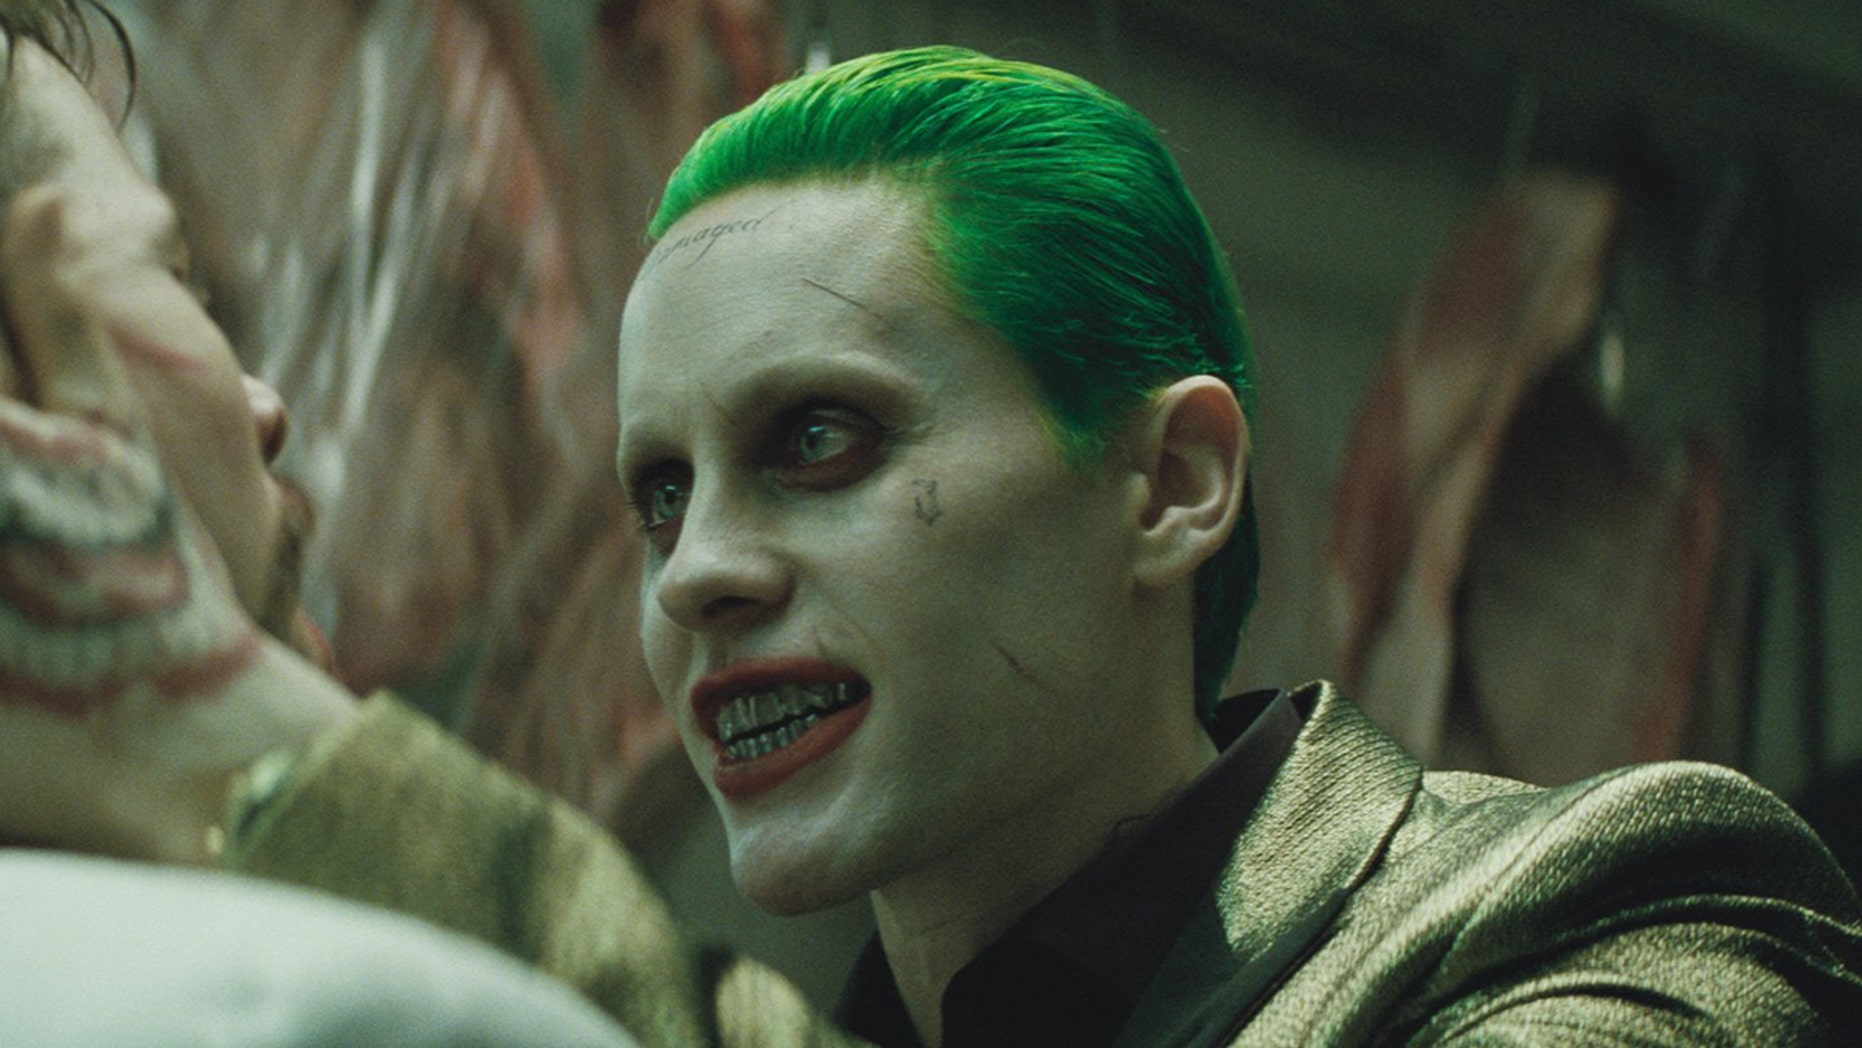 Jared Leto's Joker may return for his own standalone movie.